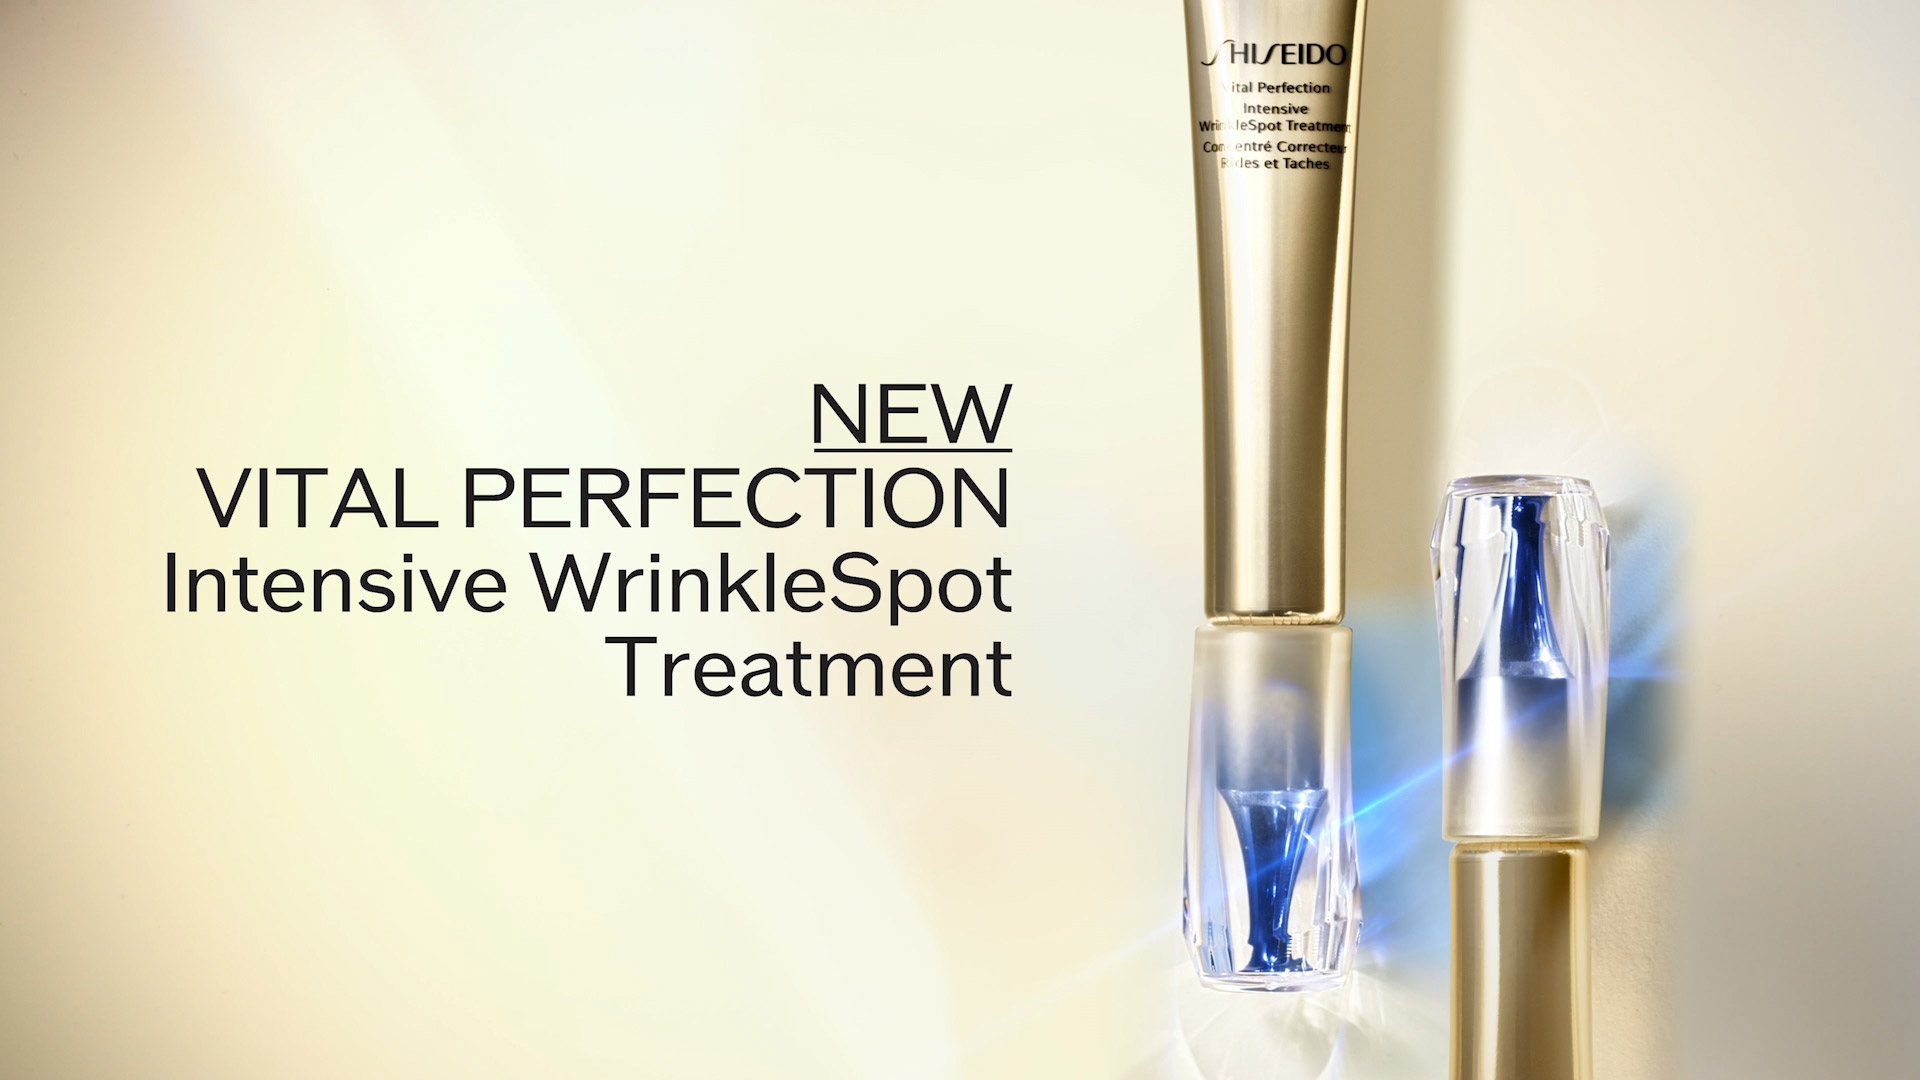 NEW Vital Perfection Intensive WrinkleSpot Treatment